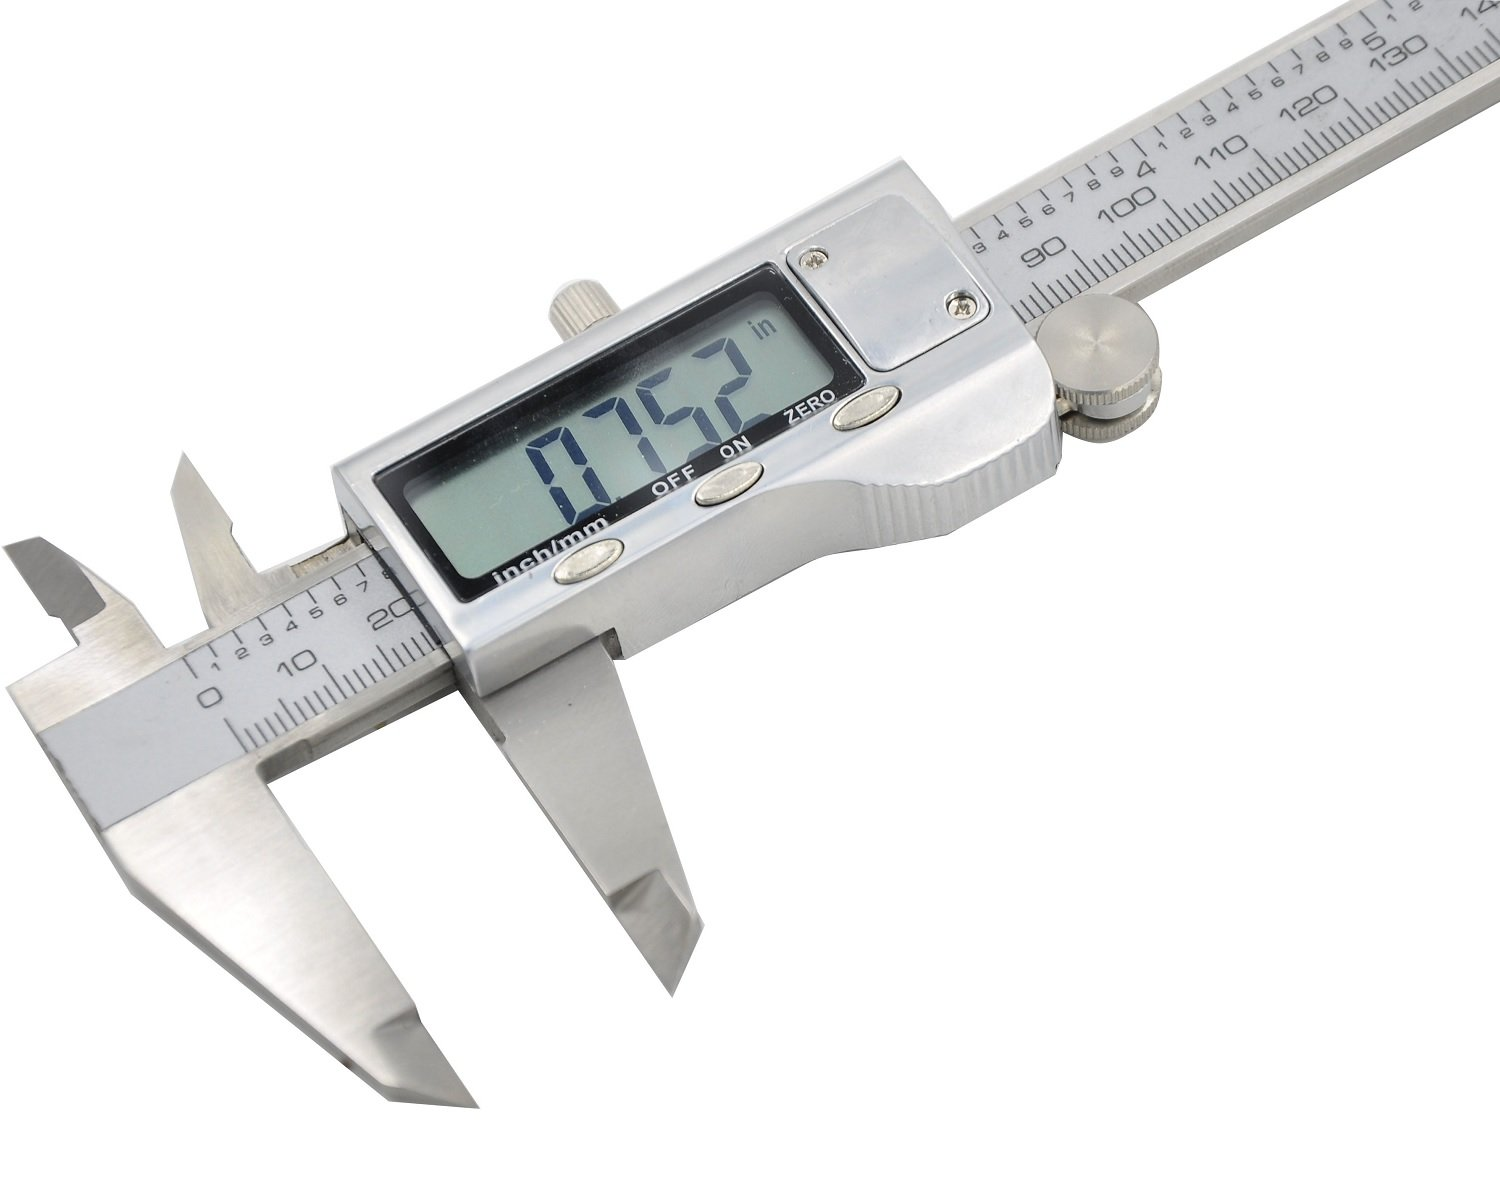 Electronic Digital Caliper - Bovini Caliper Measuring Tool in Inches & Millimeters Conversion 0-6 Inch/150 mm Stainless Steel Auto off Measuring Tool For Dimensions, Thickness, Depth, Diameter by Bovini (Image #3)